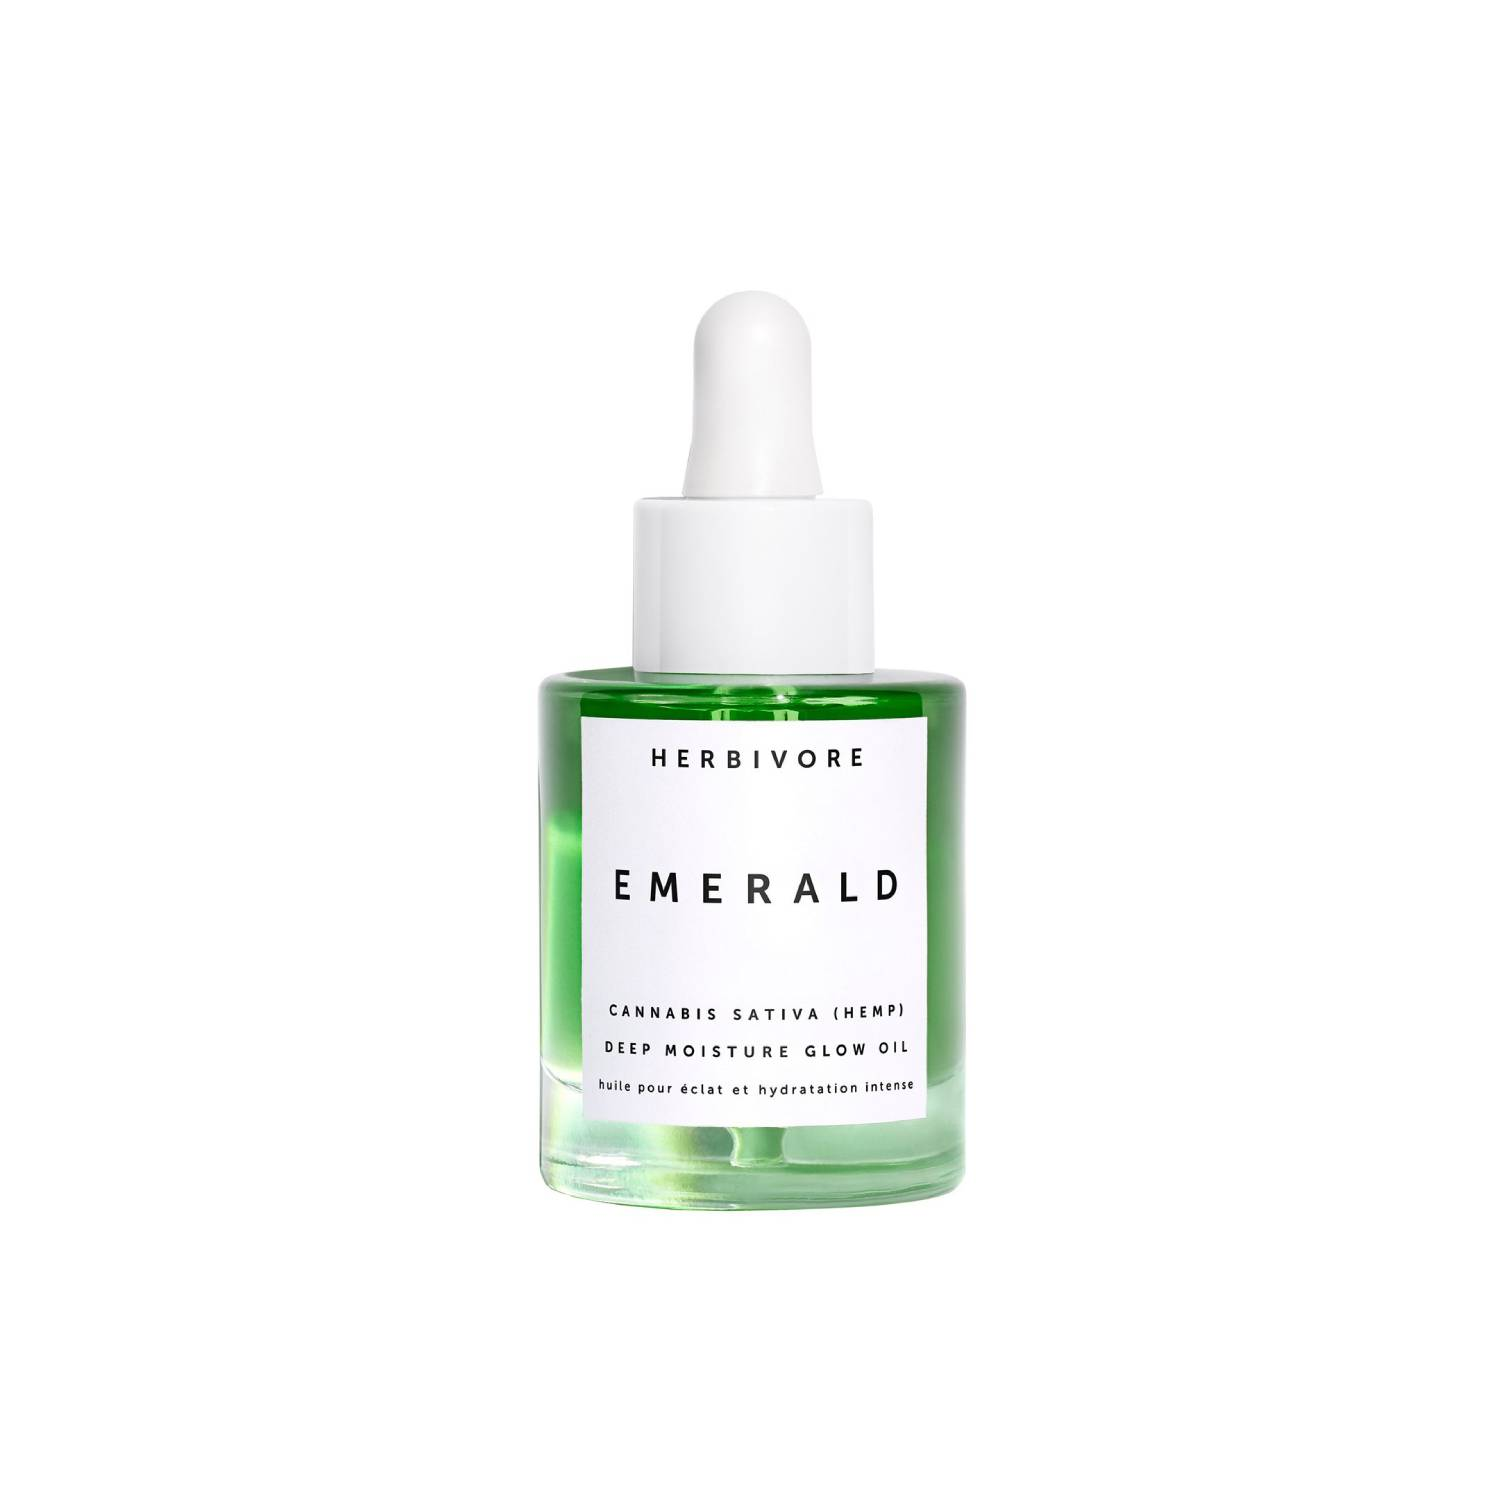 Herbivore Emerald Deep Moisture Glow Oil, £42 - This jewel of a product is as pretty as a picture, with insta-worthy aesthetics and toxic-free ingredients. It includes hemp, which has serious soothing properties and can help calm and restore sensitive skin. We loved the way our skin drank it up and was left glowing, smooth and fully quenched. Buy it here.